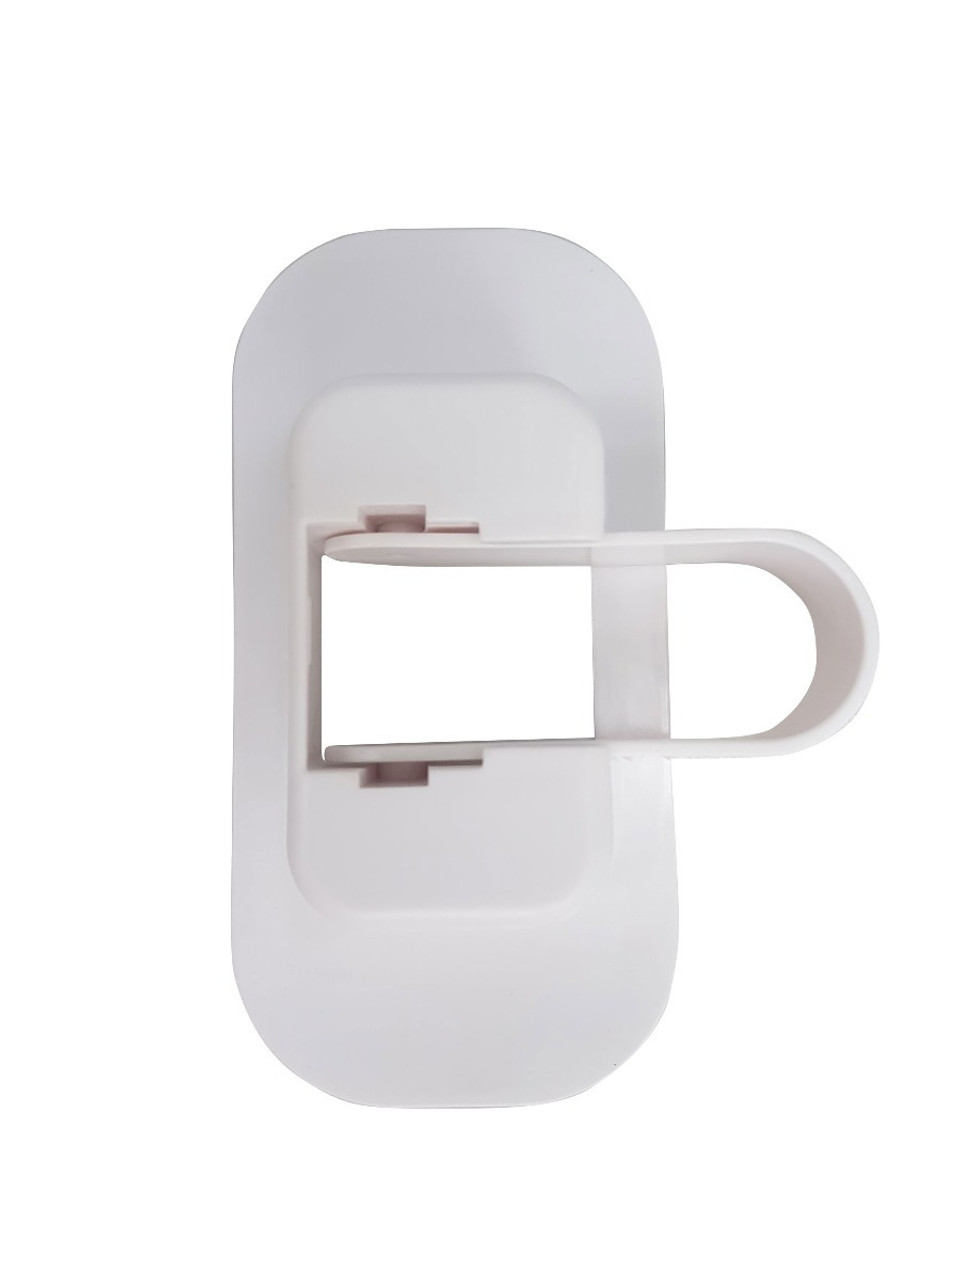 Dreambaby Adhesive Lever Door Lock 1pk at Baby Barn Discounts Dreambaby lever lock can be engaged or disengaged simply, without the need for a key.